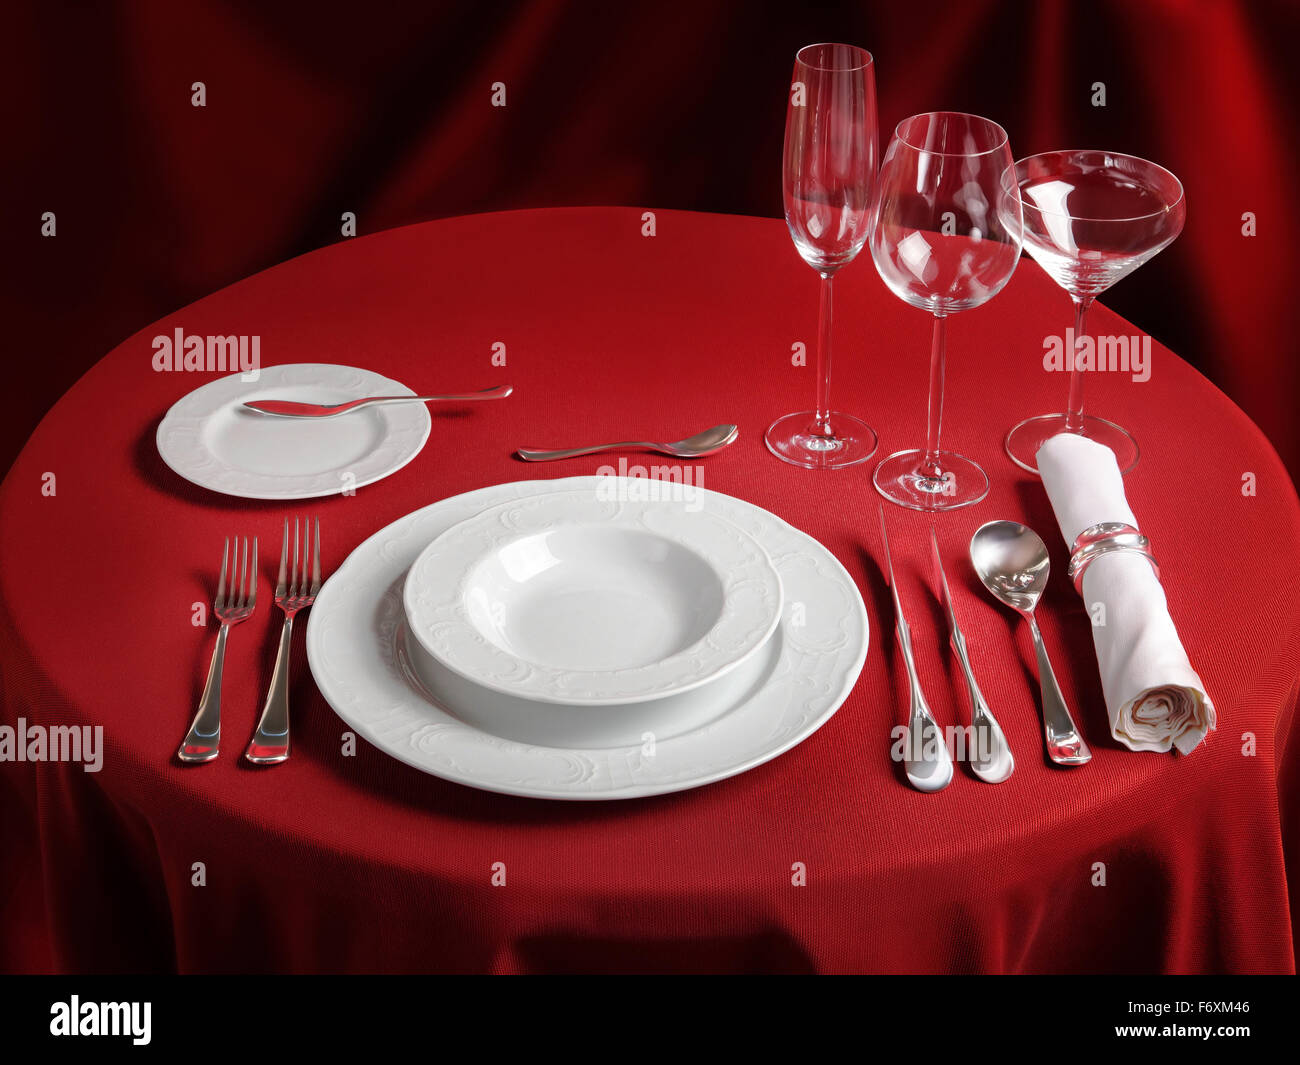 Red table with dinner set. Professional banquet table setting Stock ...